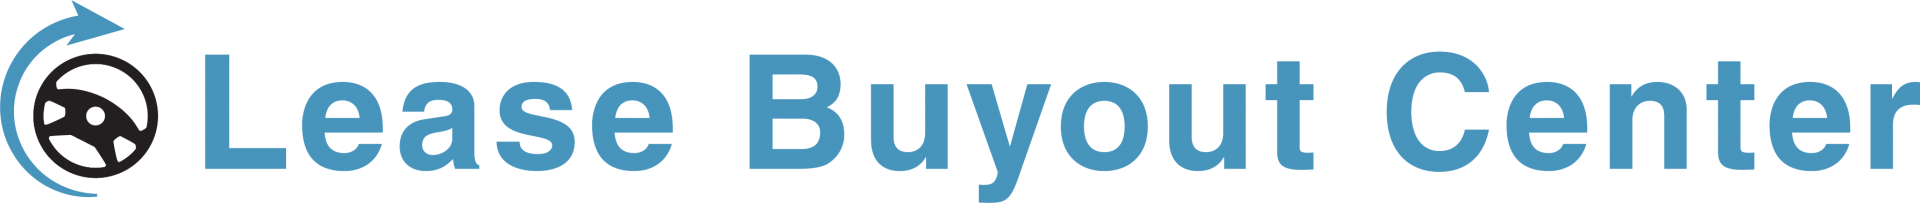 Lease Buyout Center logo